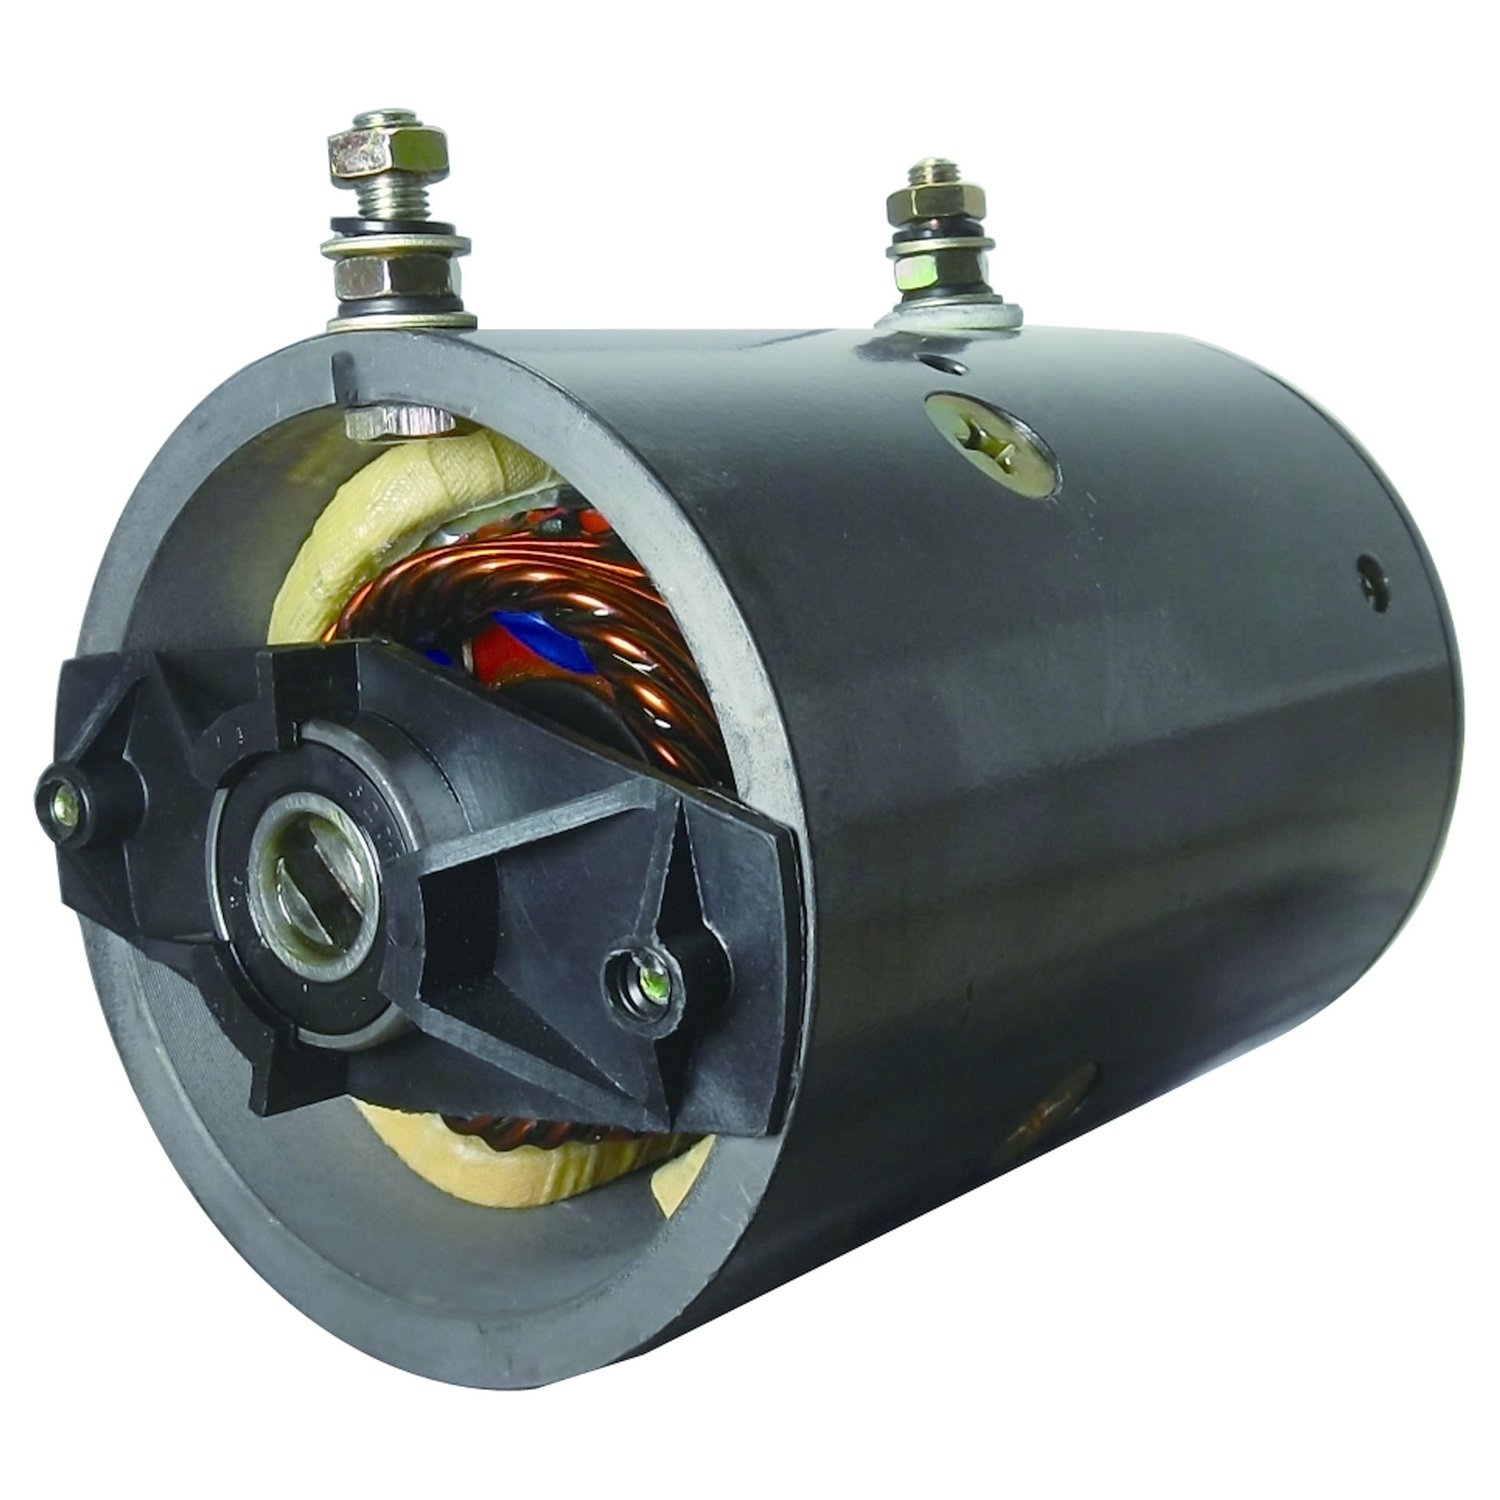 NEW WATEROUS FIRE EQUIPMENT PUMP MOTOR 12V CW SLOTTED SHAFT 2- POST MUE6210